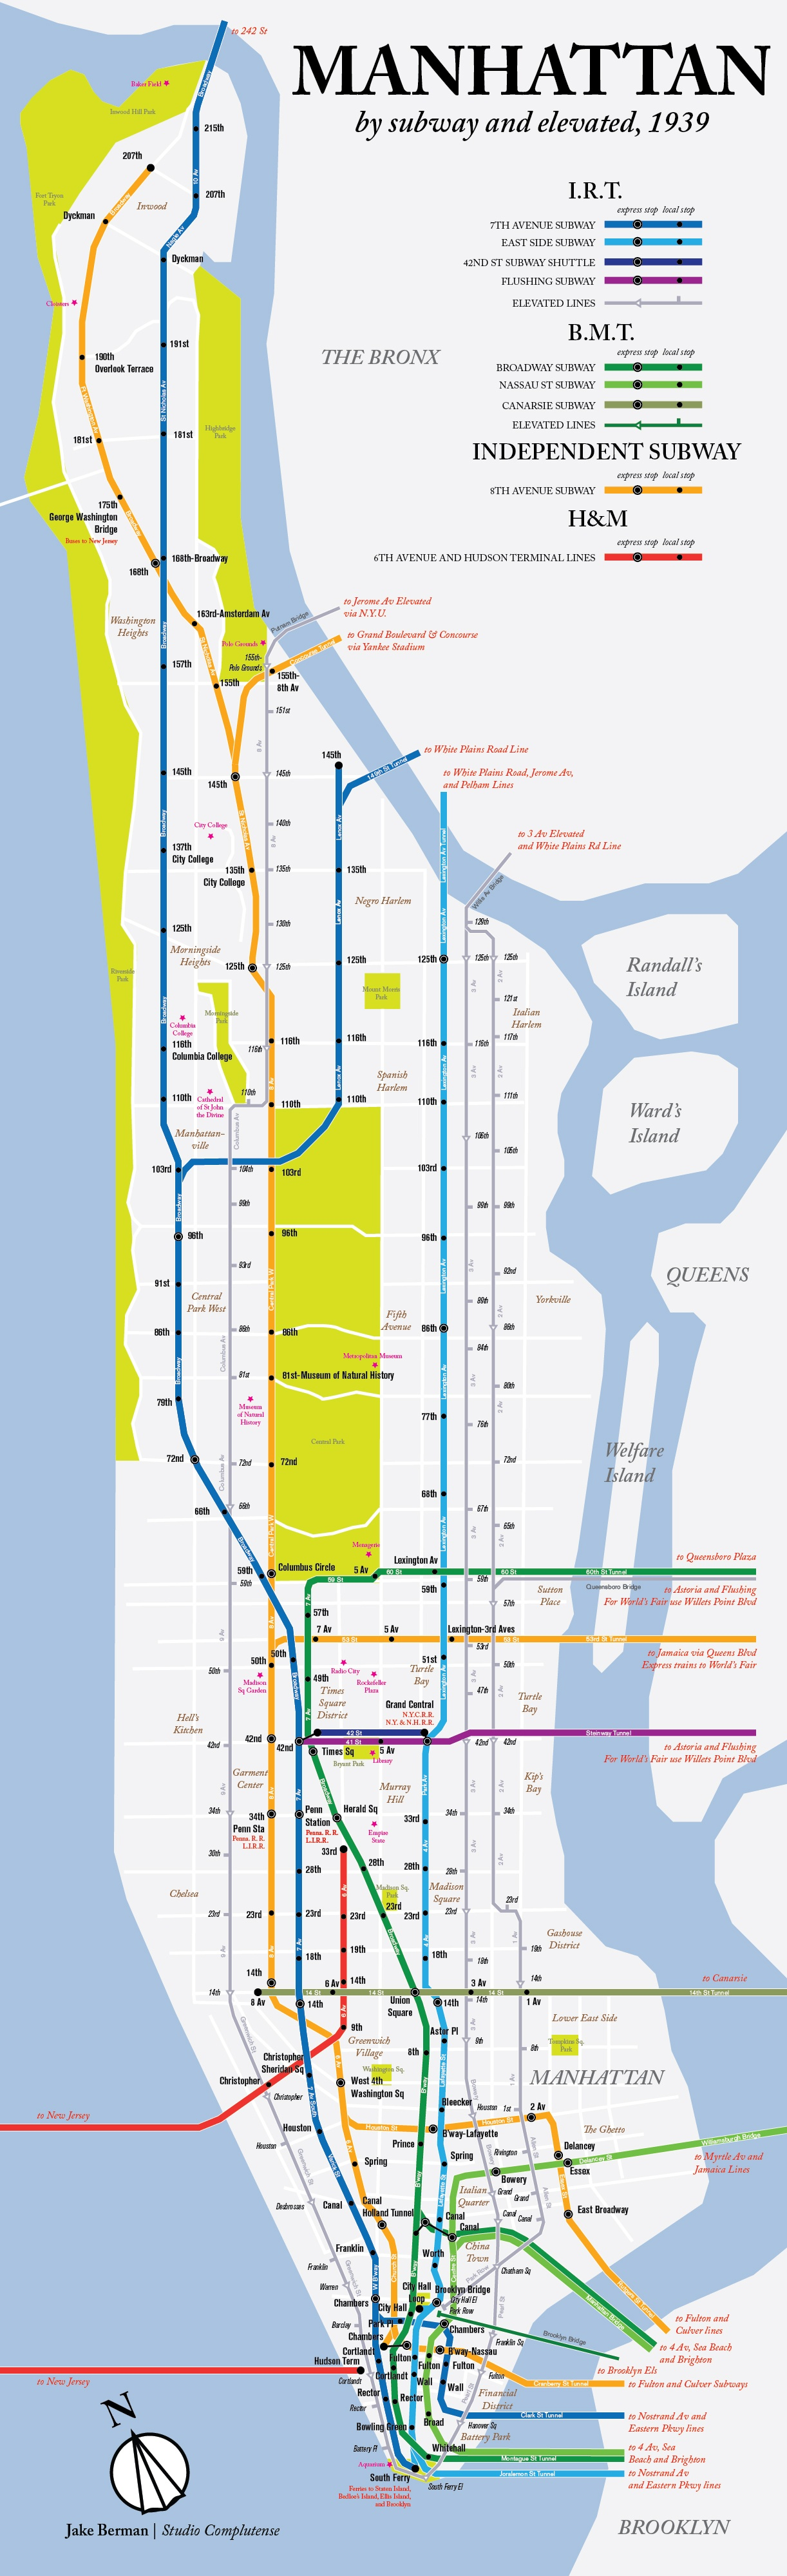 Subway Map New York Manhatten.Map Here S What The Nyc Subway System Looked Like In 1939 6sqft